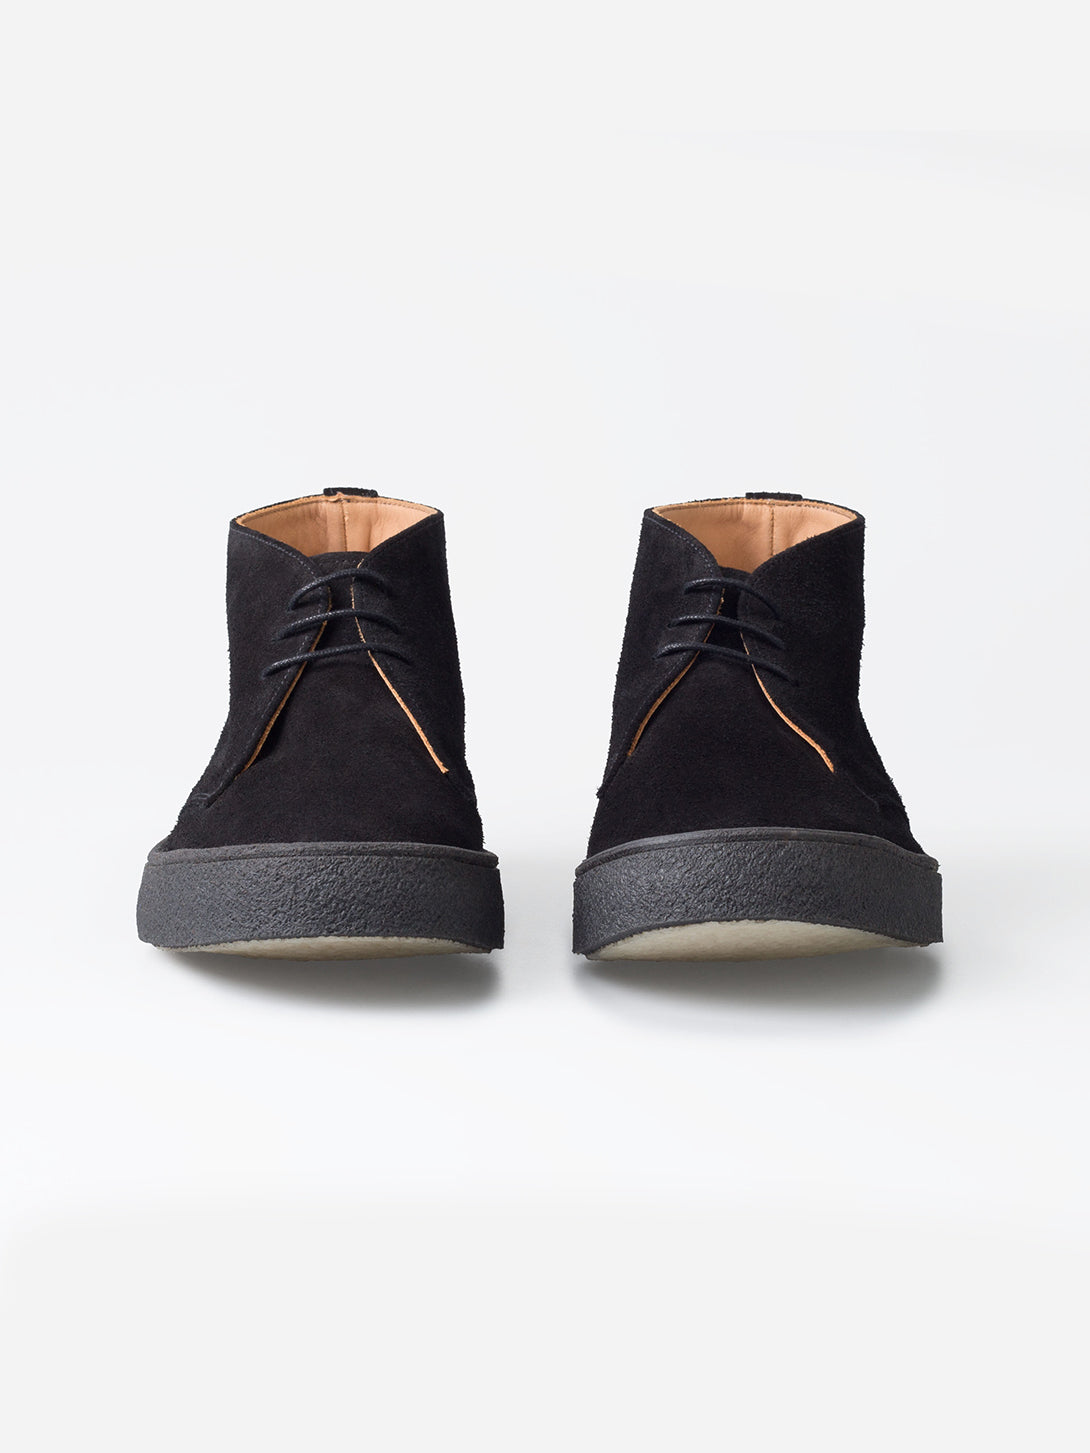 BLACK Popboy Chukka suede shoes - George Cox